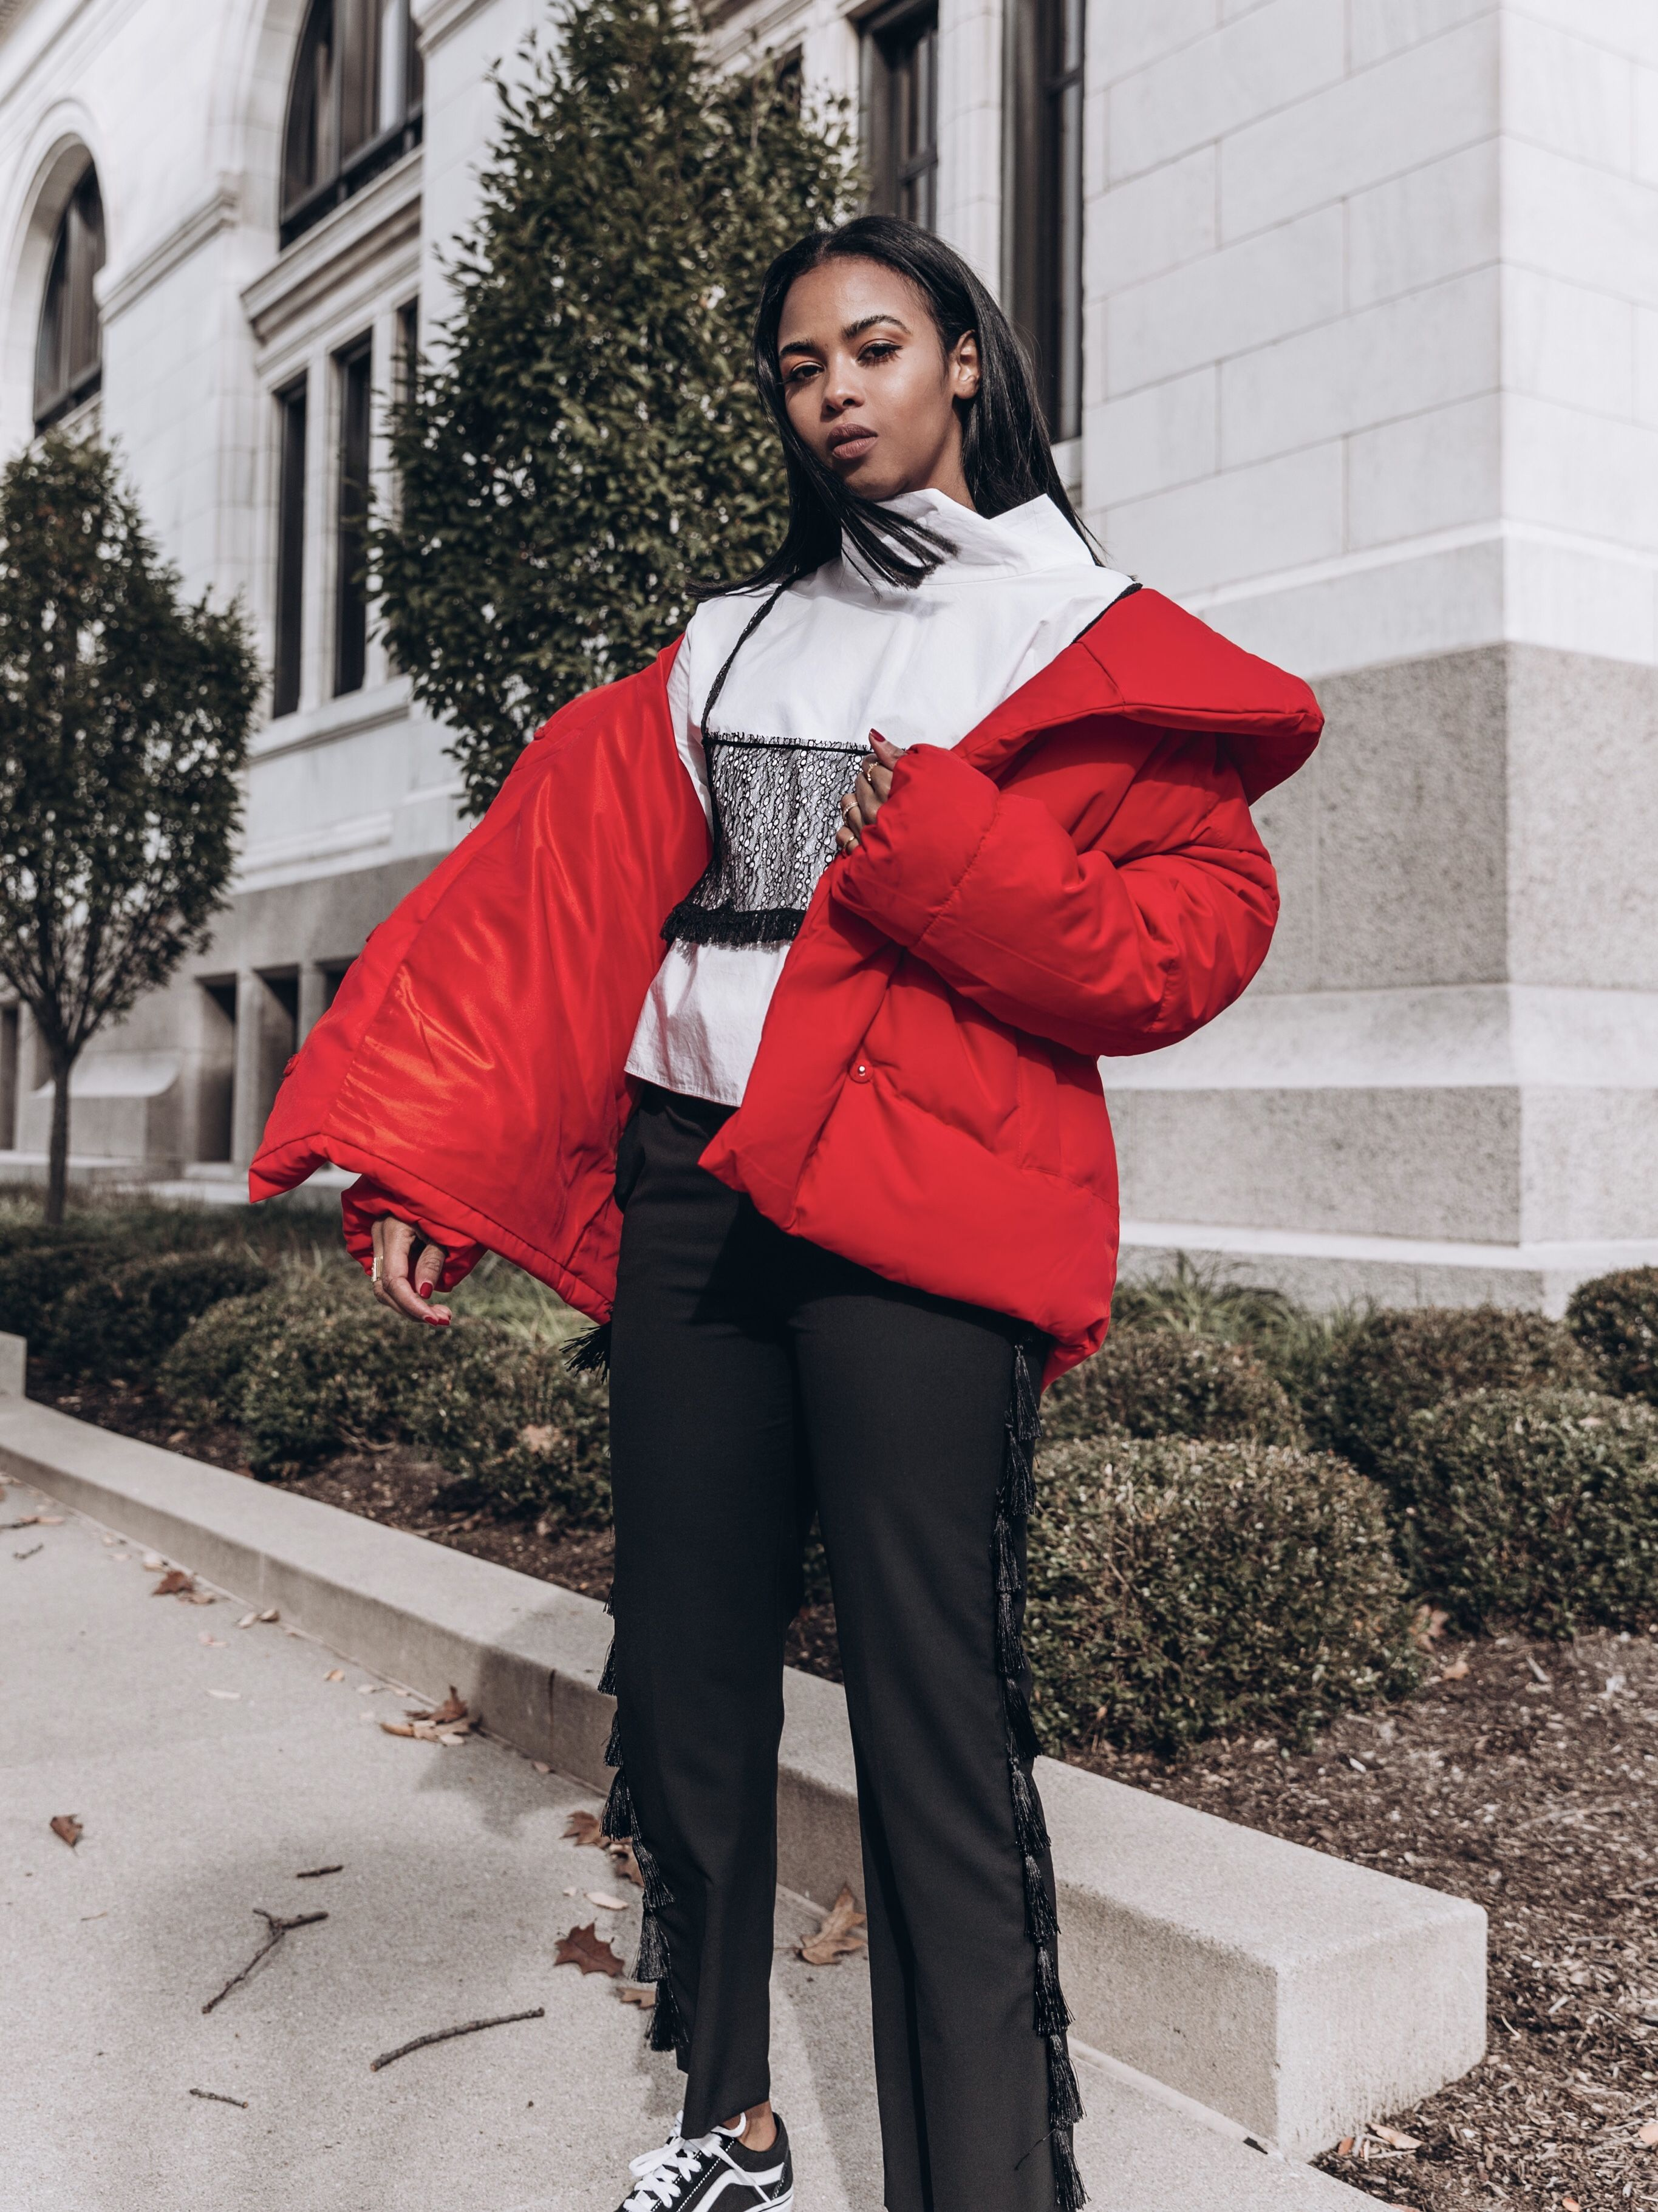 fd71c9eec STYLE GUIDE: Styling Puffer Jackets | TheYusufs.com | Puffer jackets ...